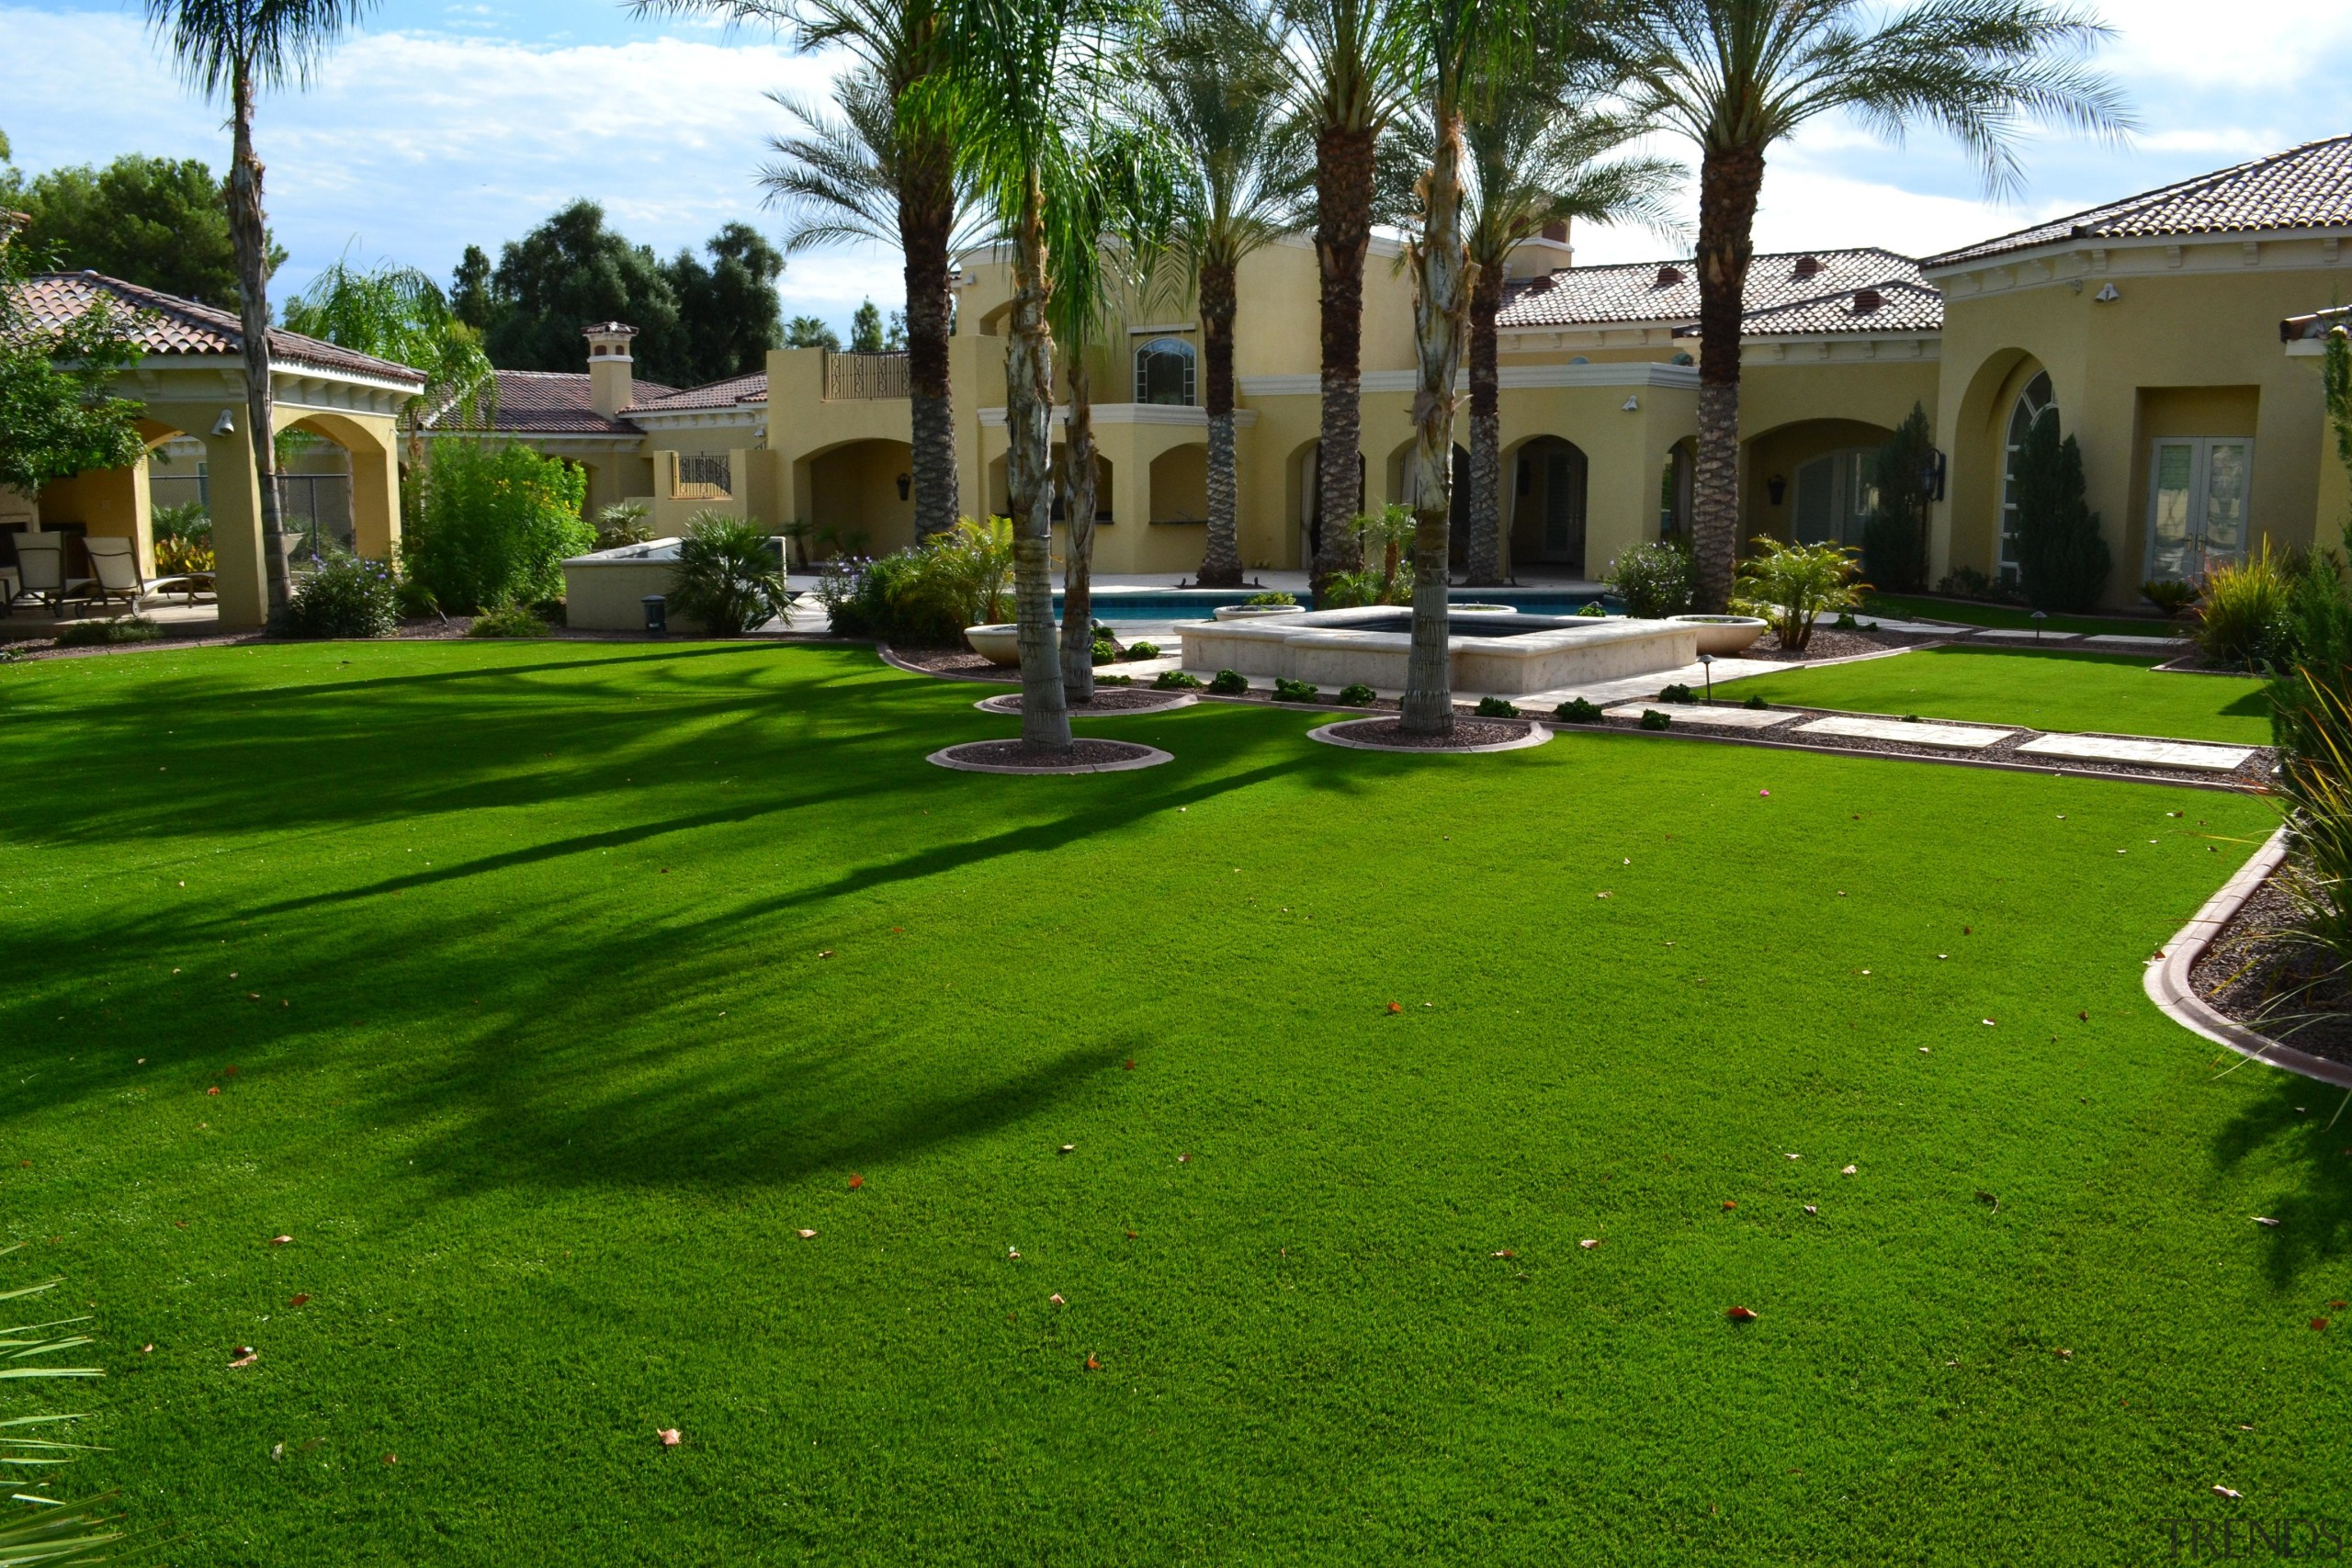 October 1 - arecales | artificial turf | arecales, artificial turf, backyard, building, courtyard, estate, garden, grass, grass family, grassland, hacienda, house, land lot, landscape, landscaping, lawn, palm tree, plant, property, real estate, residential area, tree, villa, yard, green